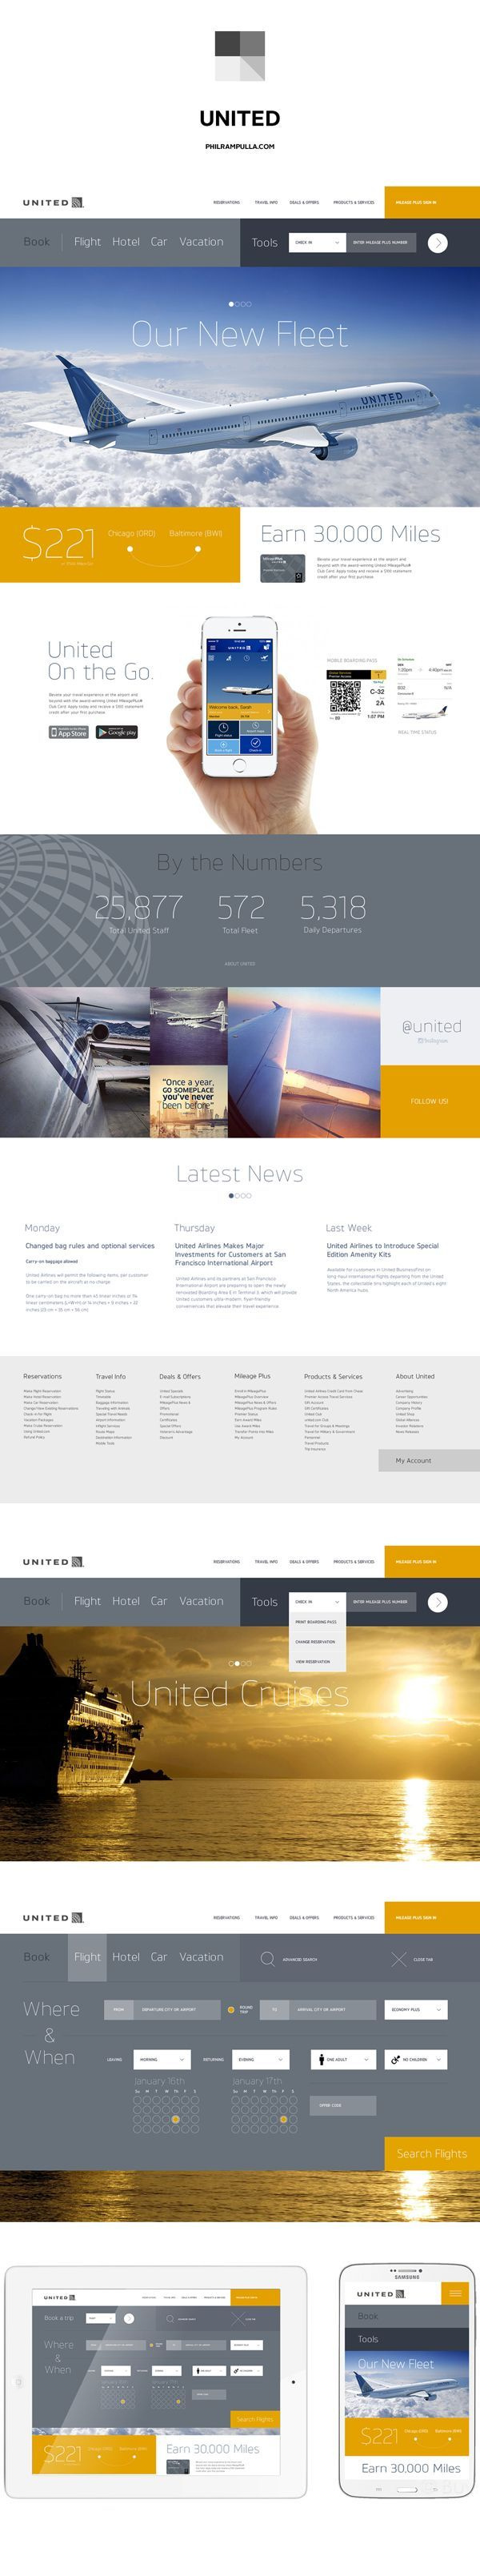 Web design / United Airlines Website Redesign by Phil Rampulla / 30 Examples of Trendy & Modern Web Design